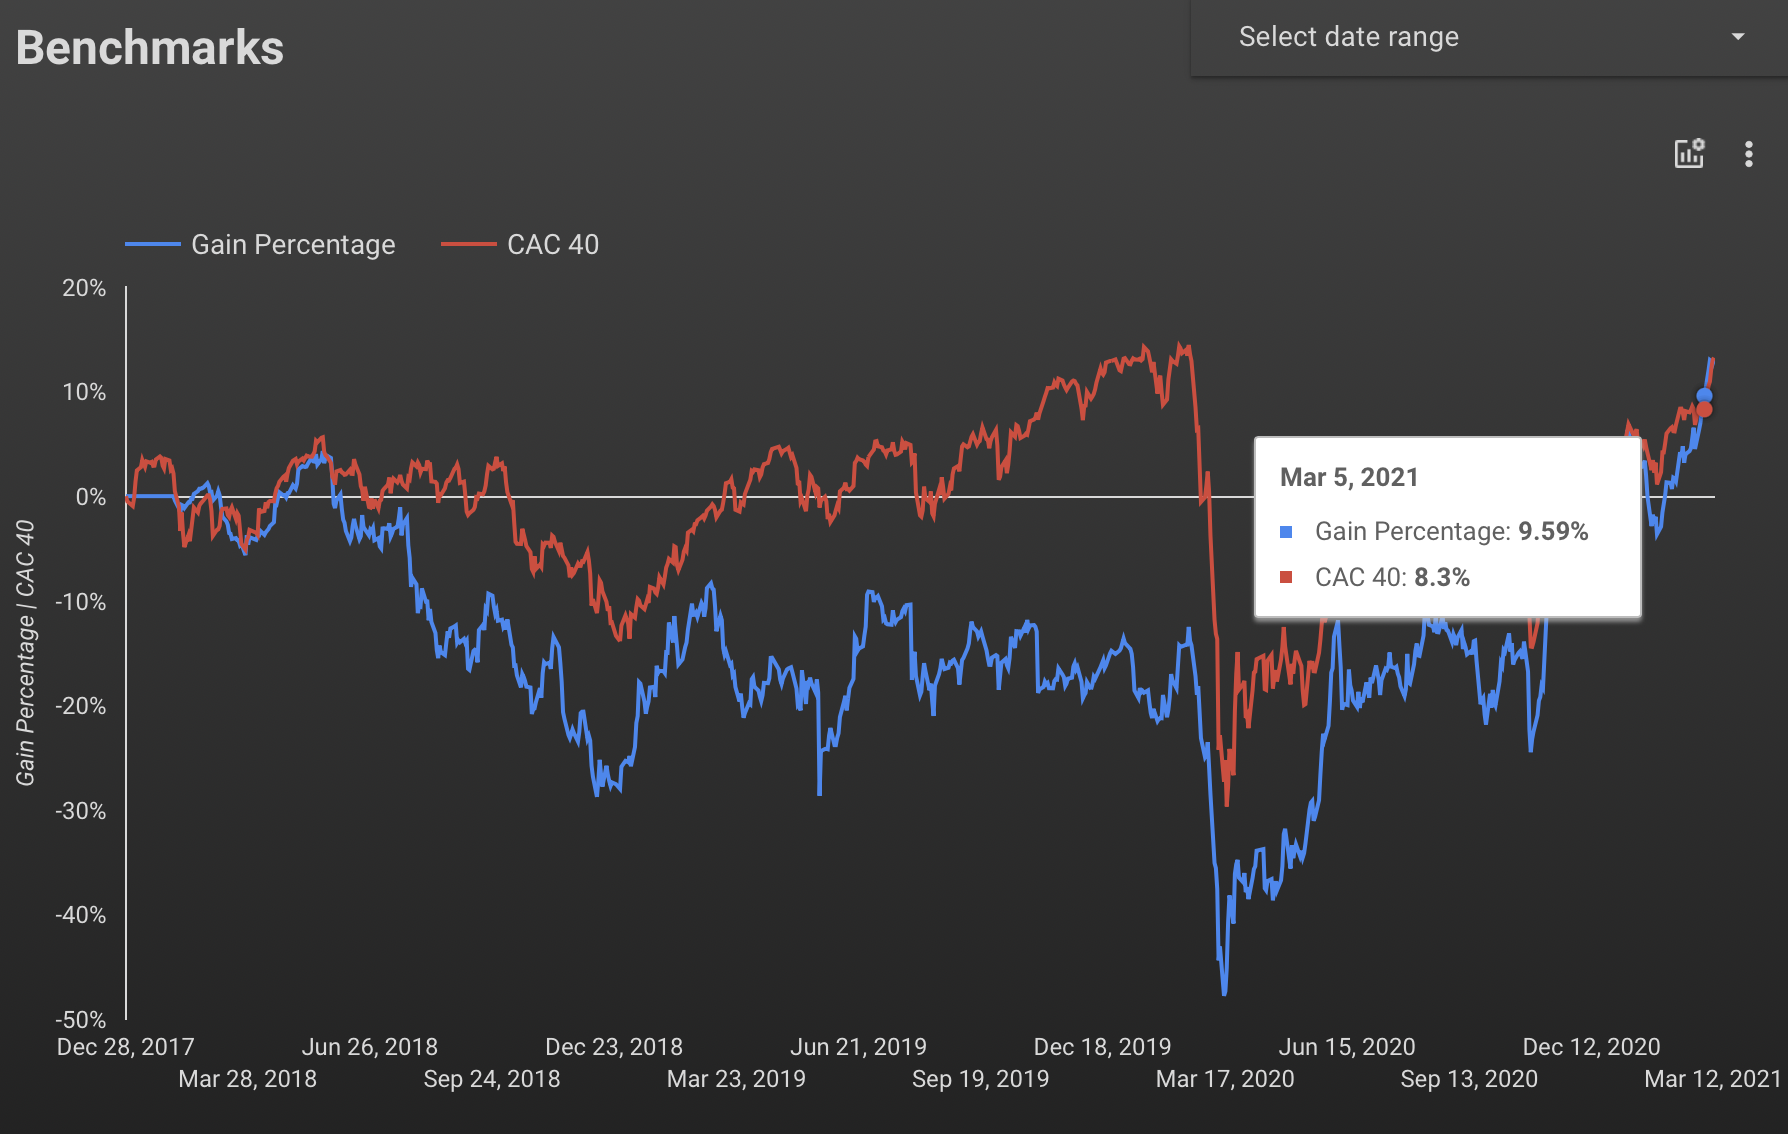 Compare the stock portfolio's gain percentage vs the change of the market index CAC40 since the first transaction date of the portfolio